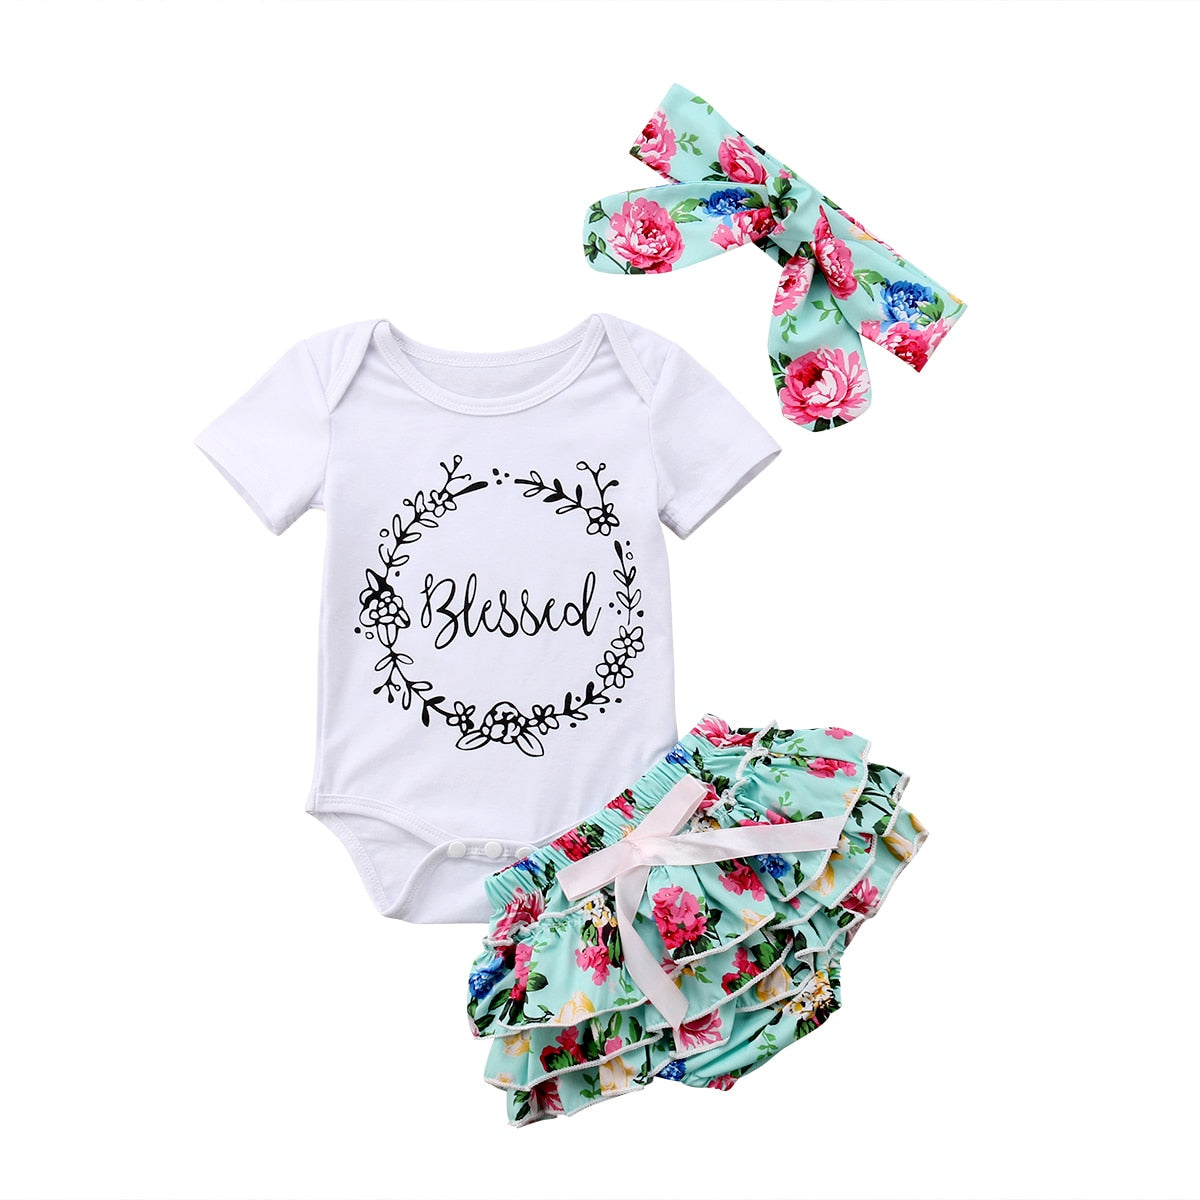 3pc Blessed Rompers With Floral Short